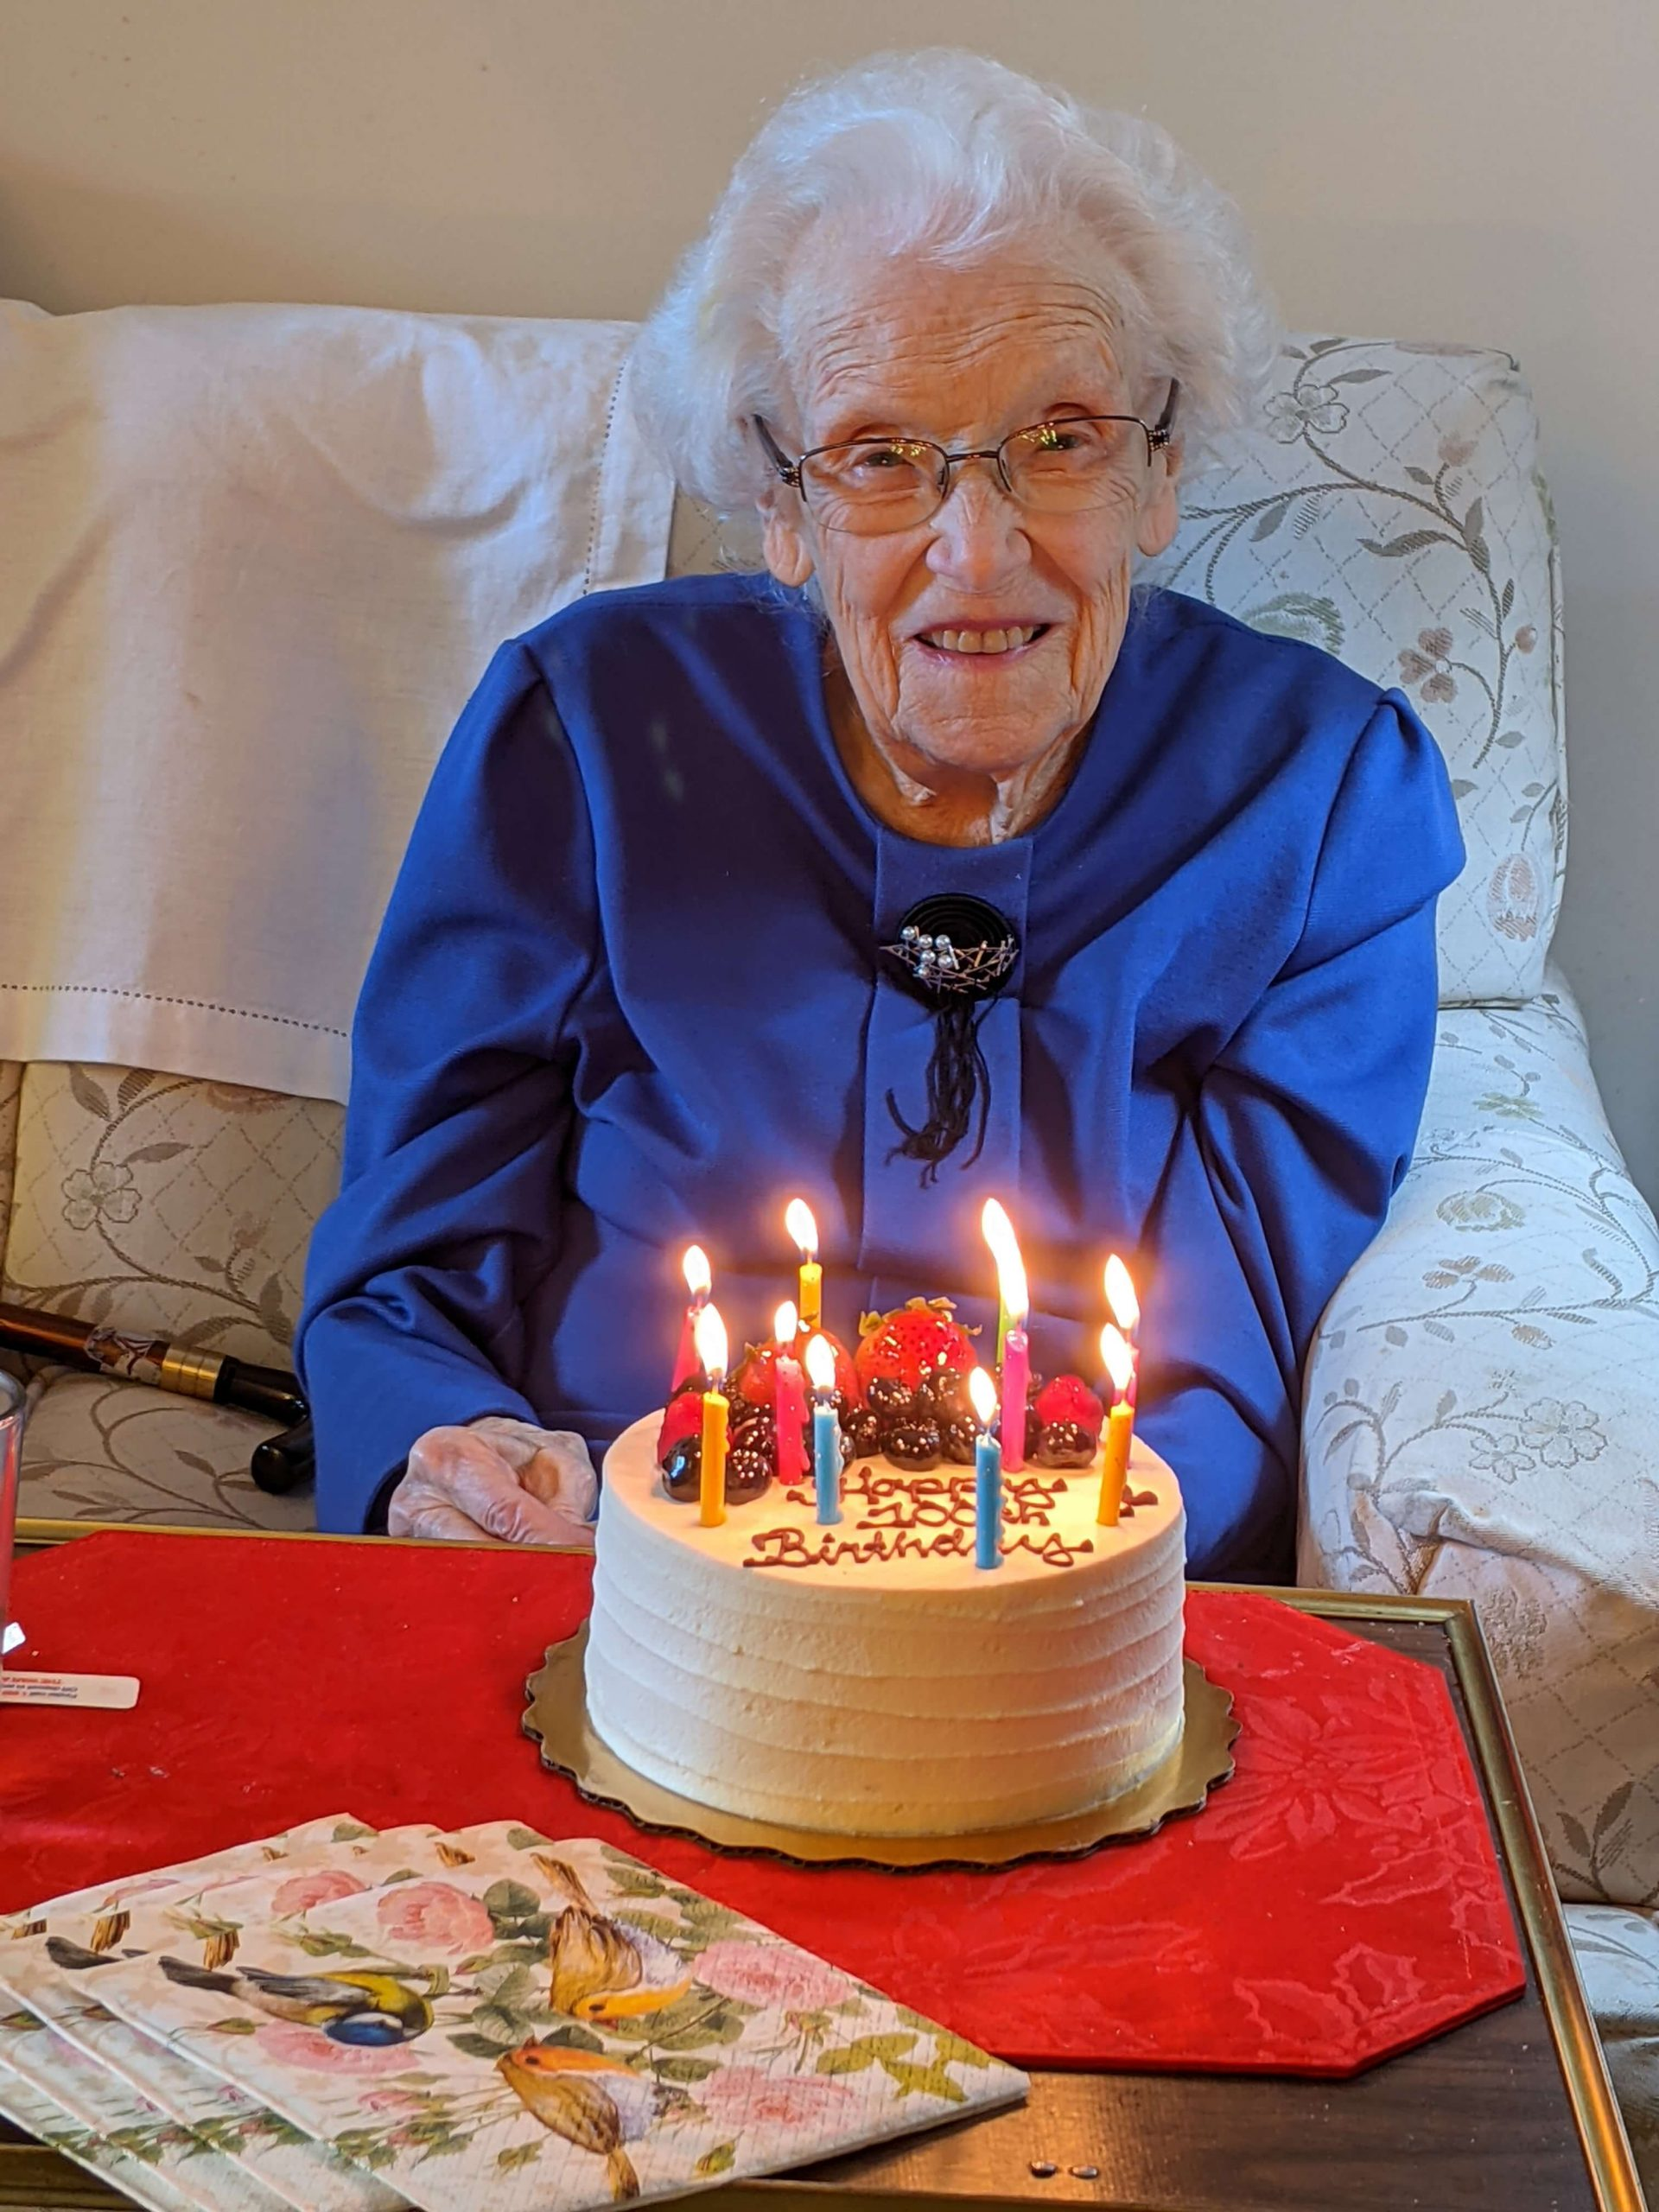 Freeing Advice From a 100-Year-Old Friend